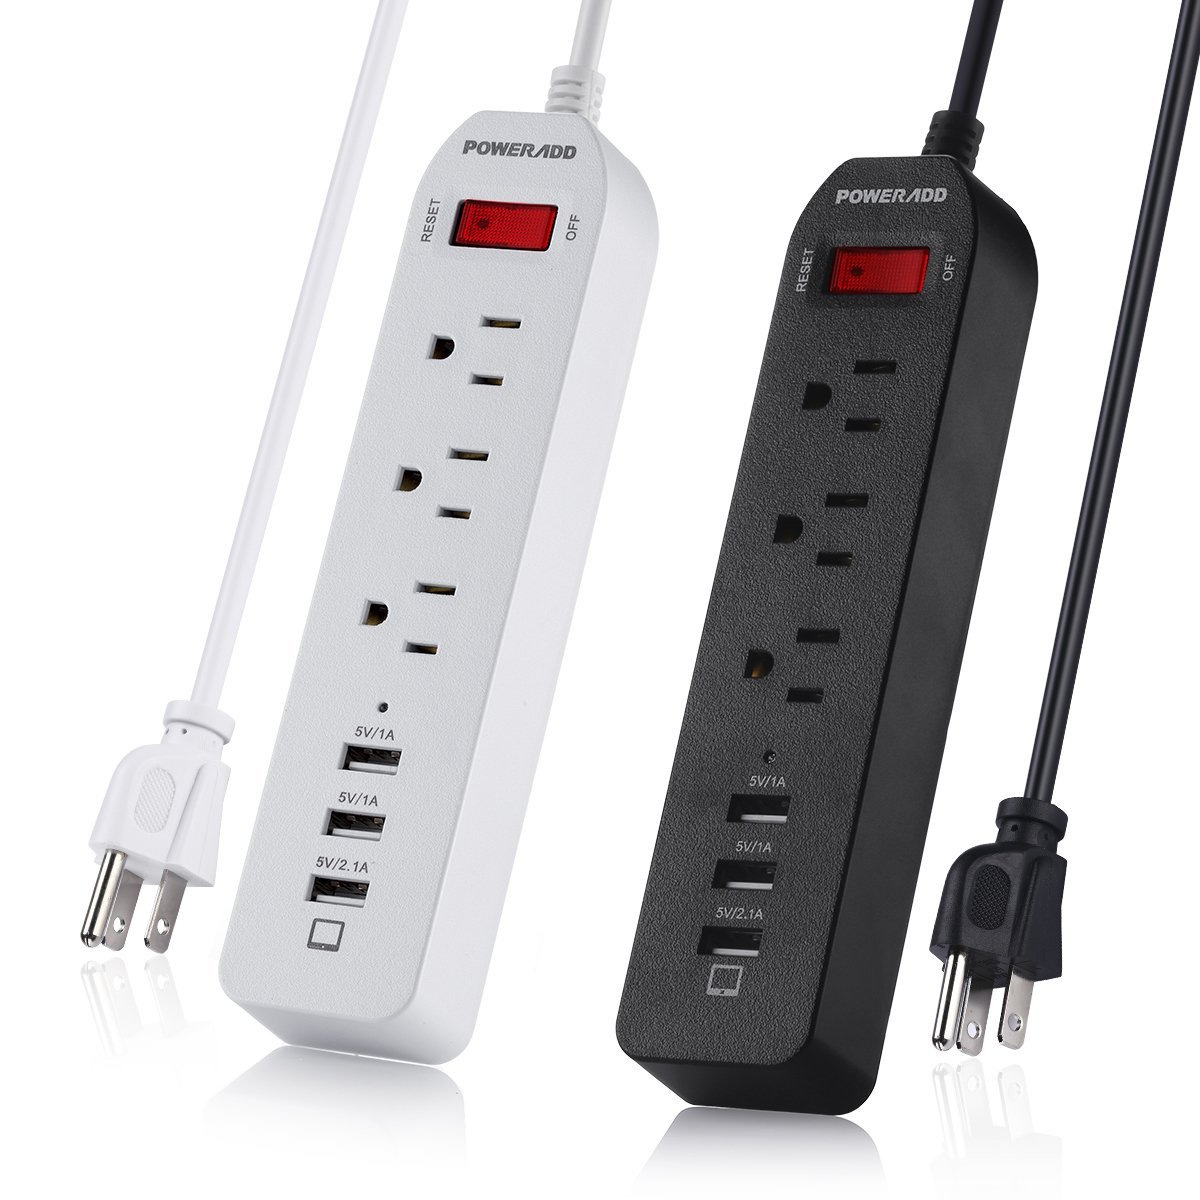 Power Strips Vs. Surge Protector: What Are Their Differences?